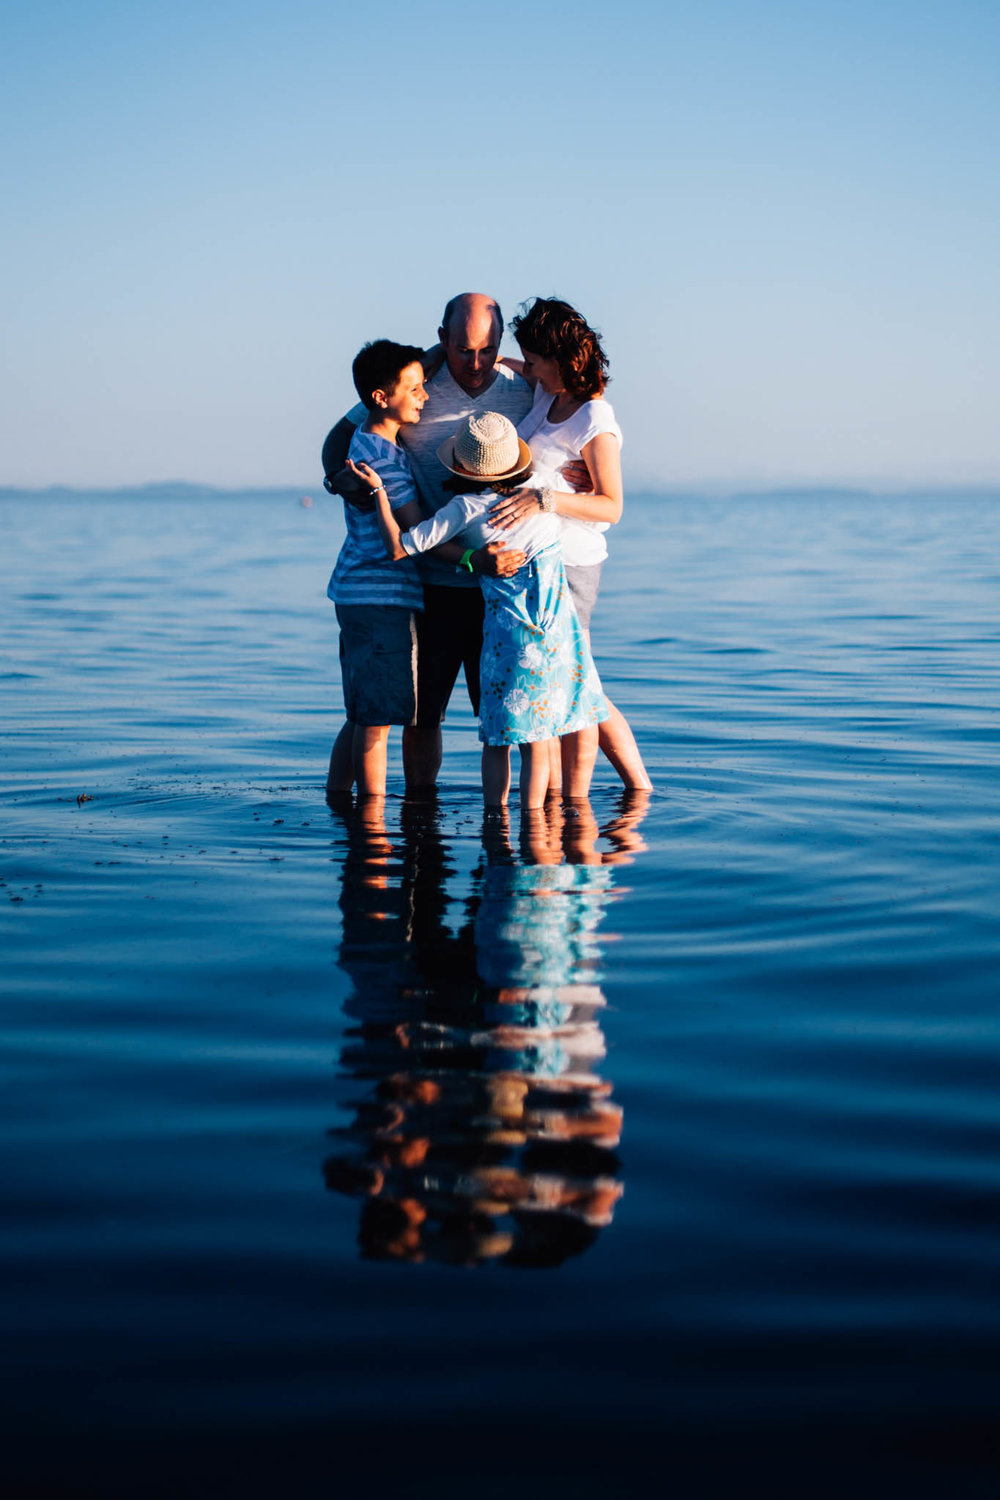 White Rock family beach lifestyle photographer - Emmy Lou Virginia Photography-15.jpg